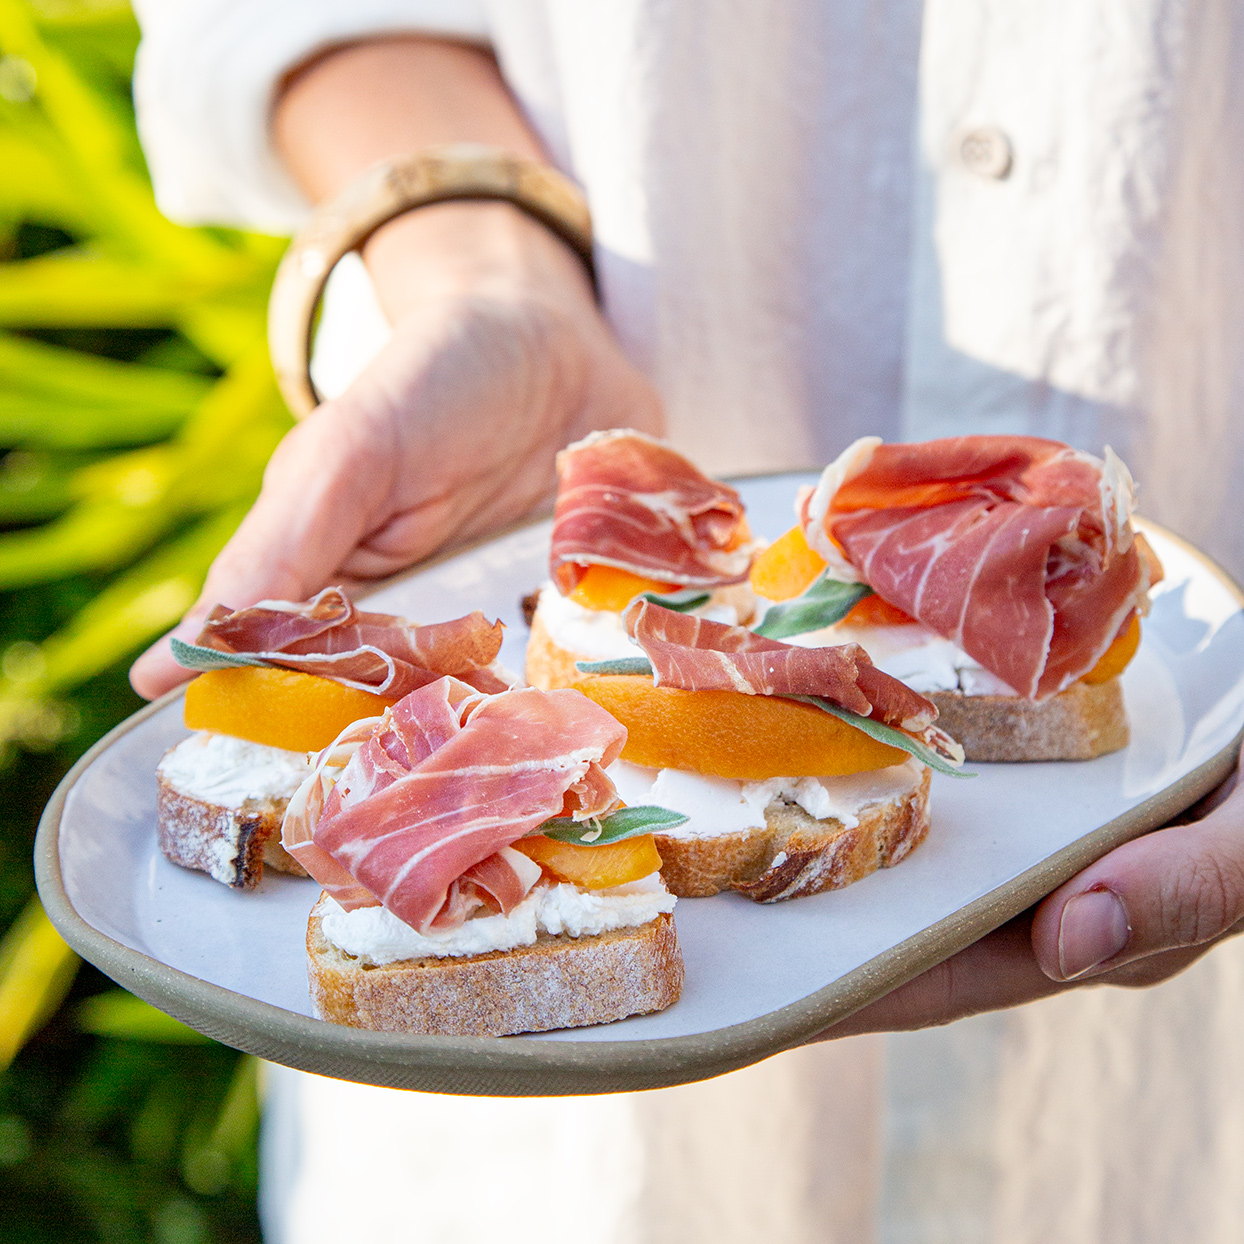 Canapés with Peach, Sage & Prosciutto Trusted Brands